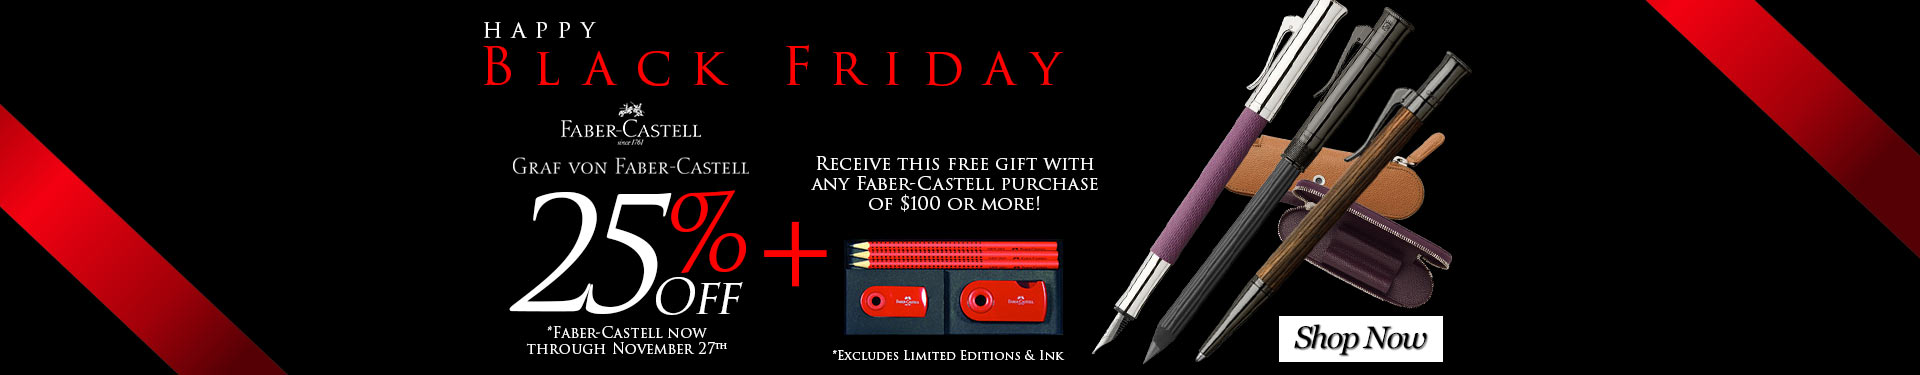 Black Friday - 25% Off Select Faber-Castell